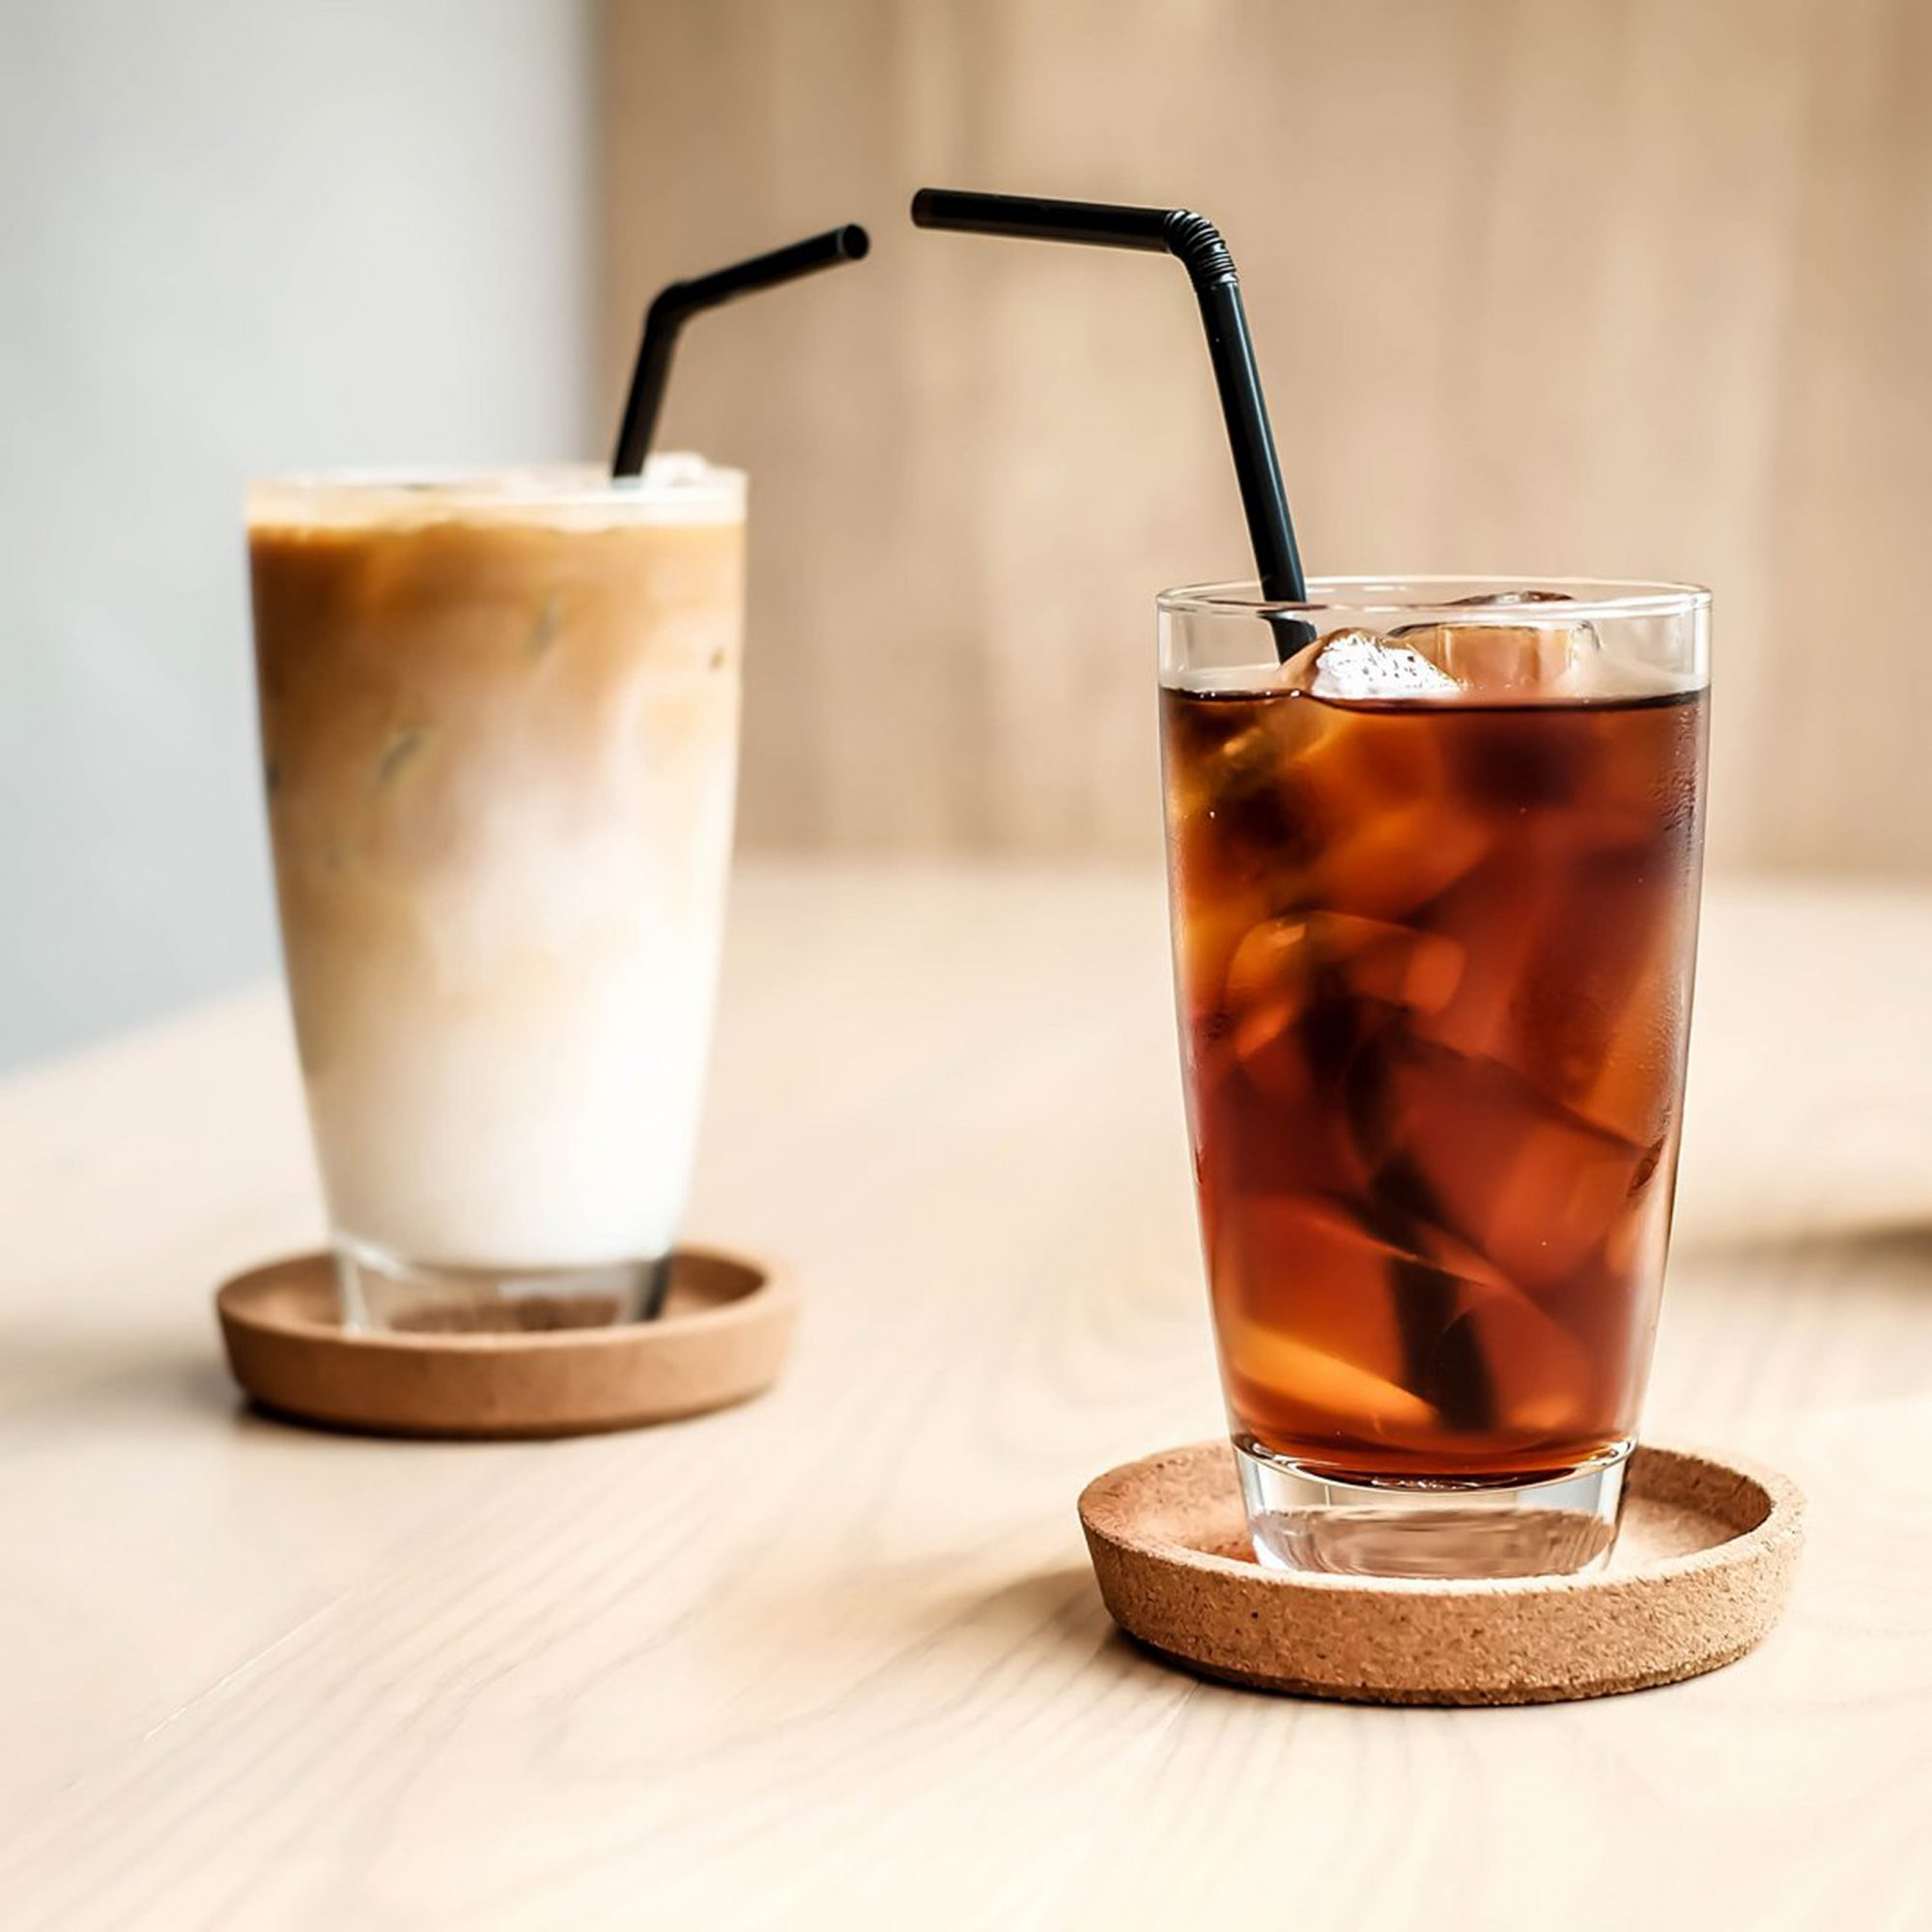 This $13 Cold Brew Coffee Is So Delicious, Amazon Shoppers Are Drinking It Black